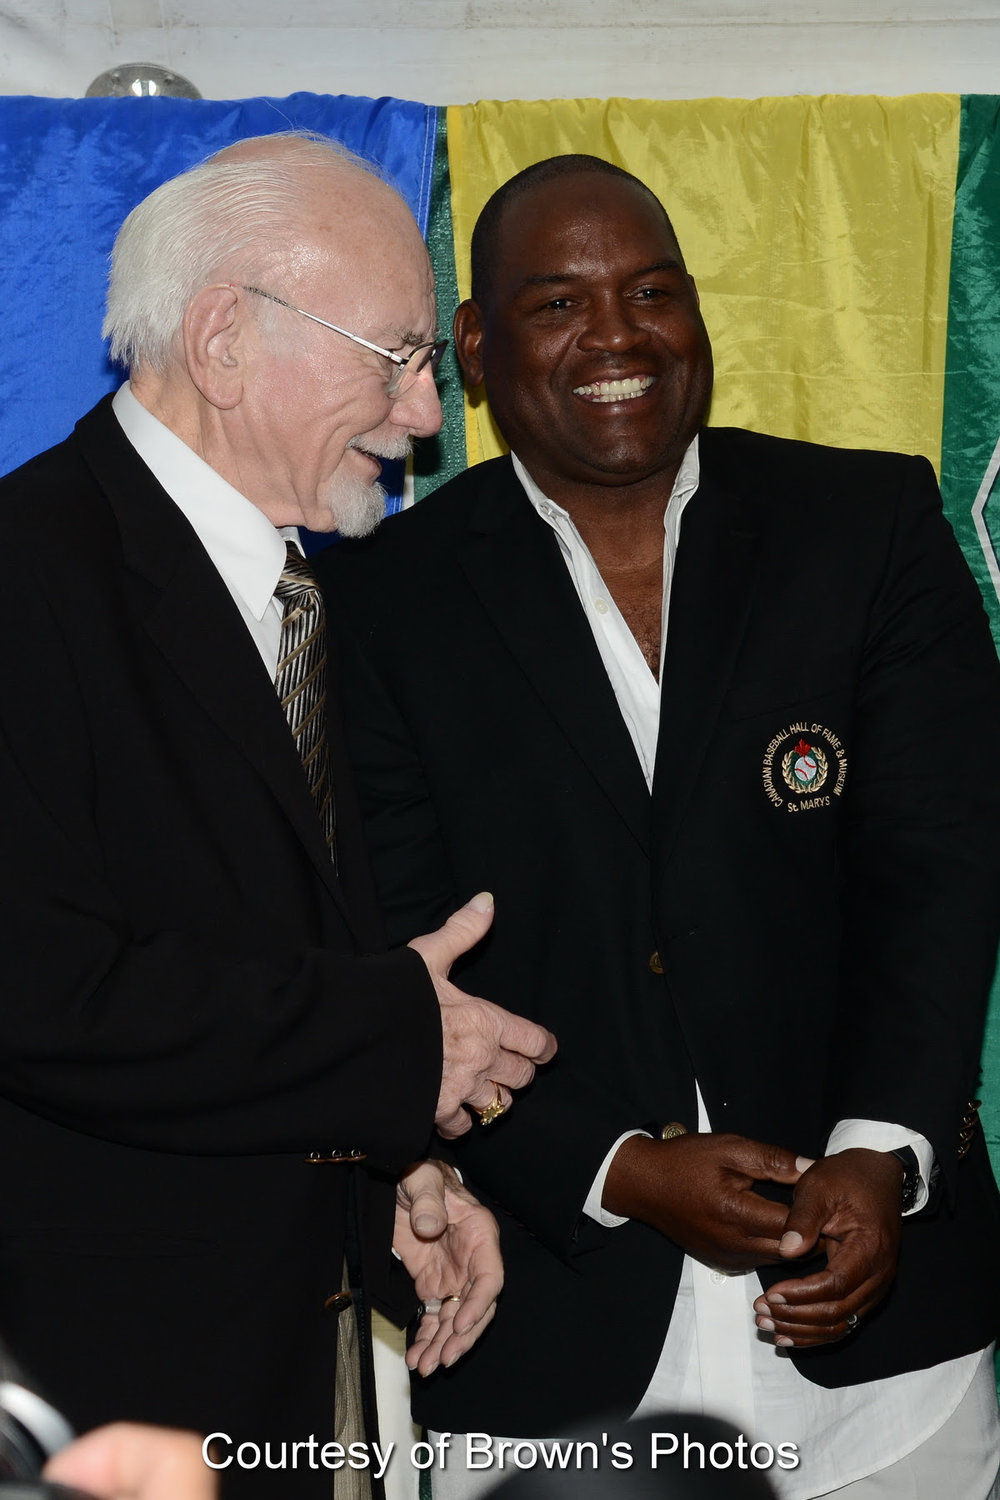 Former Montreal Expos managerr Jim Fanning extends congratulations to Tim Raines on his induction fo the Canadian Baseball HOF in St. Marys.